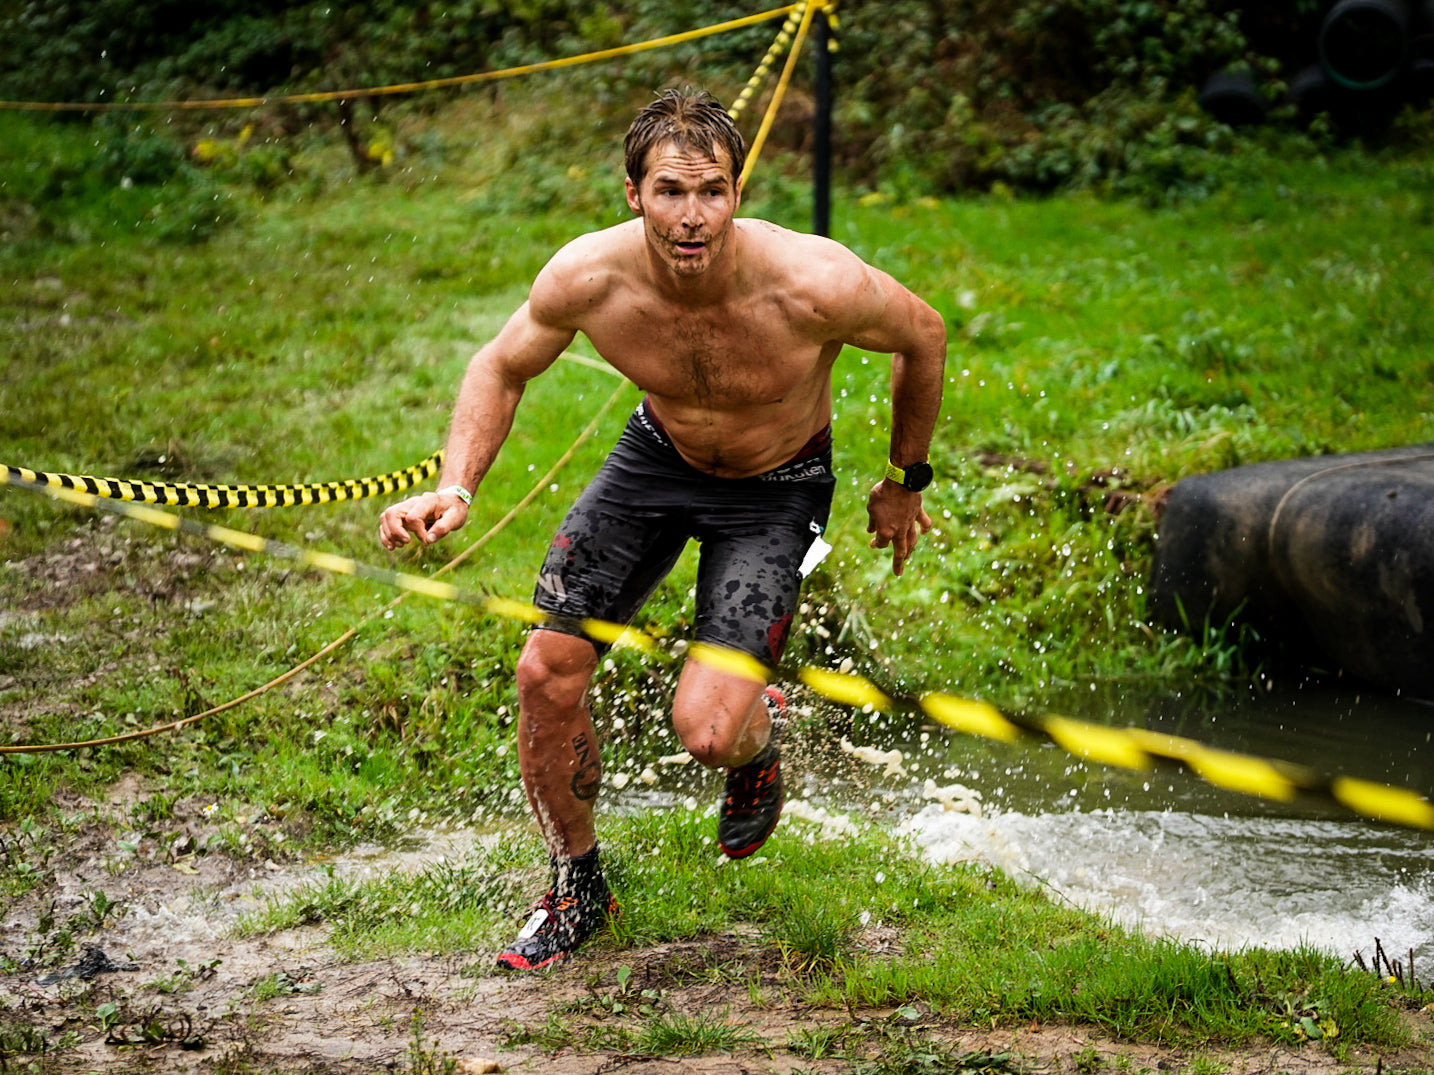 Ryan Atkins chasing the lead in the men's 15k at the 2019 OCRWC